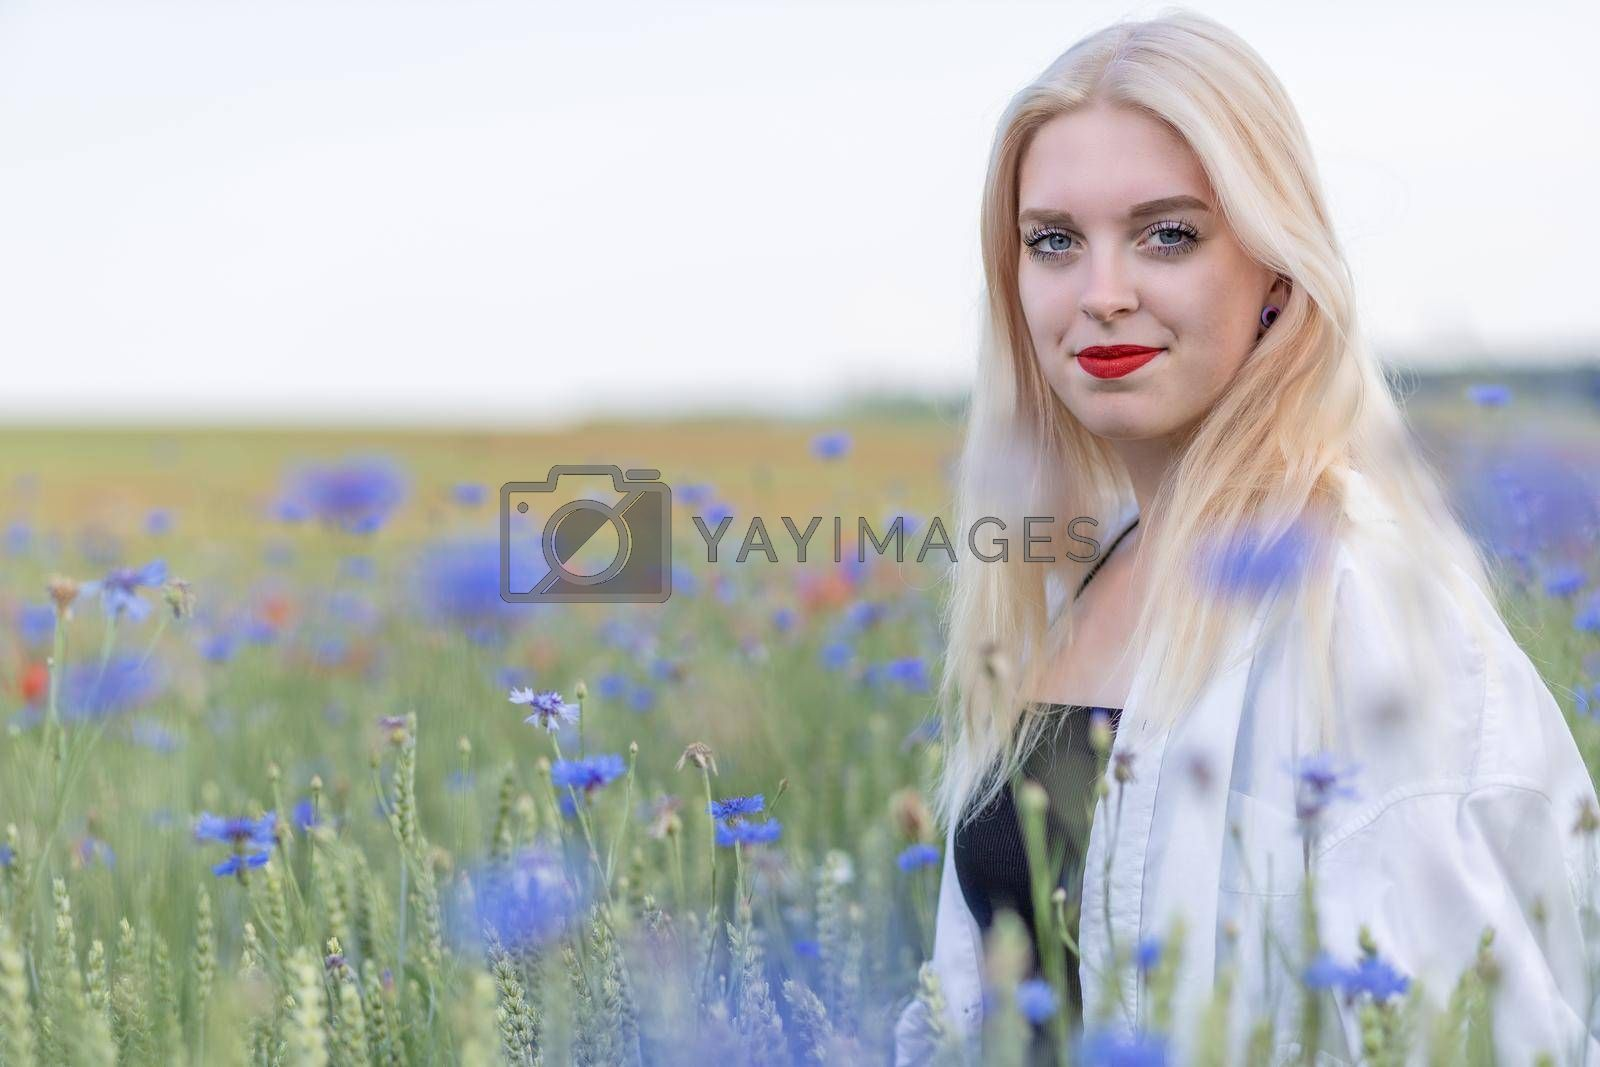 Royalty free image of Portrait of attractive blonde woman posing in summer meadow by Frank11